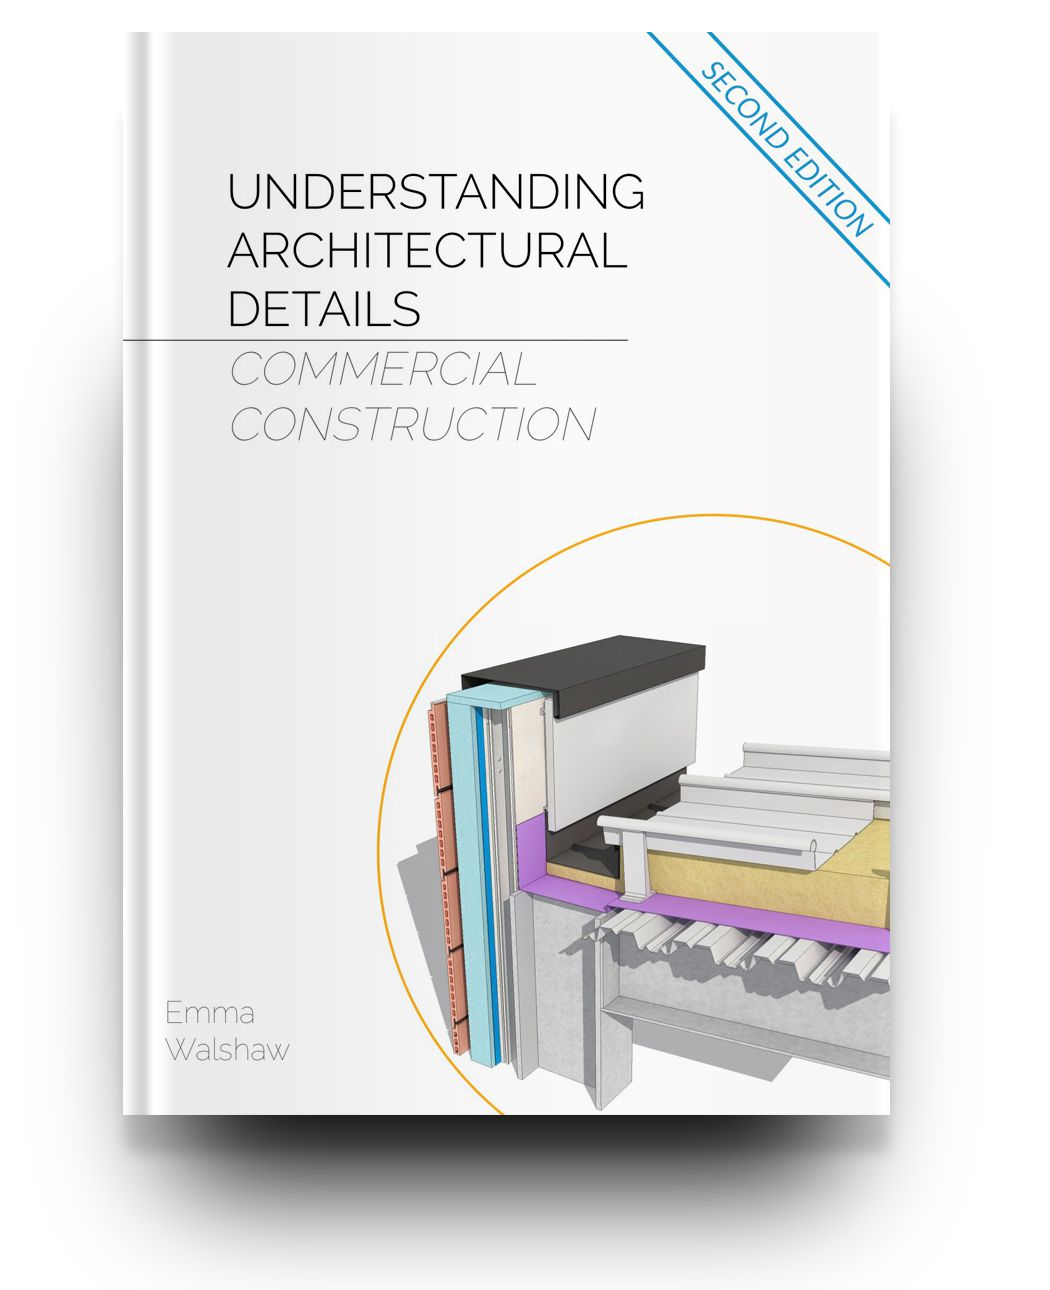 Understanding Architectural Details - FULL PACKAGE with Passivhaus 2nd Ed